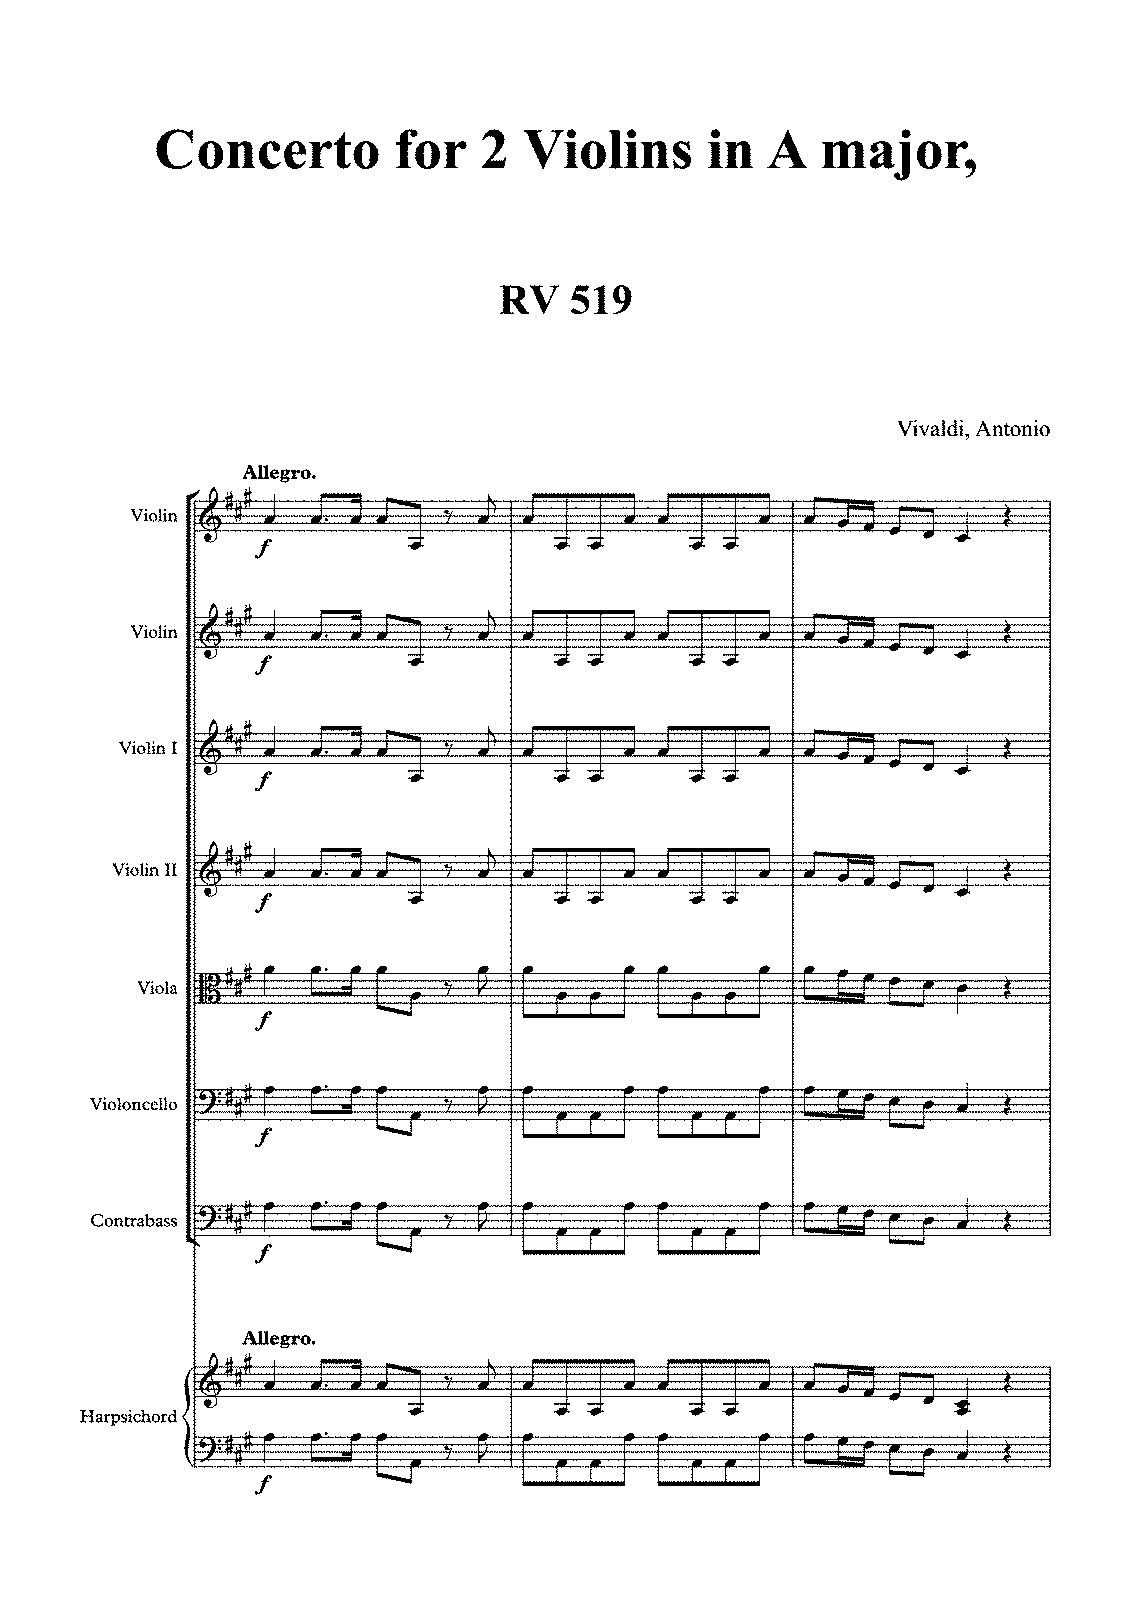 PMLP126409-Vivaldi, Antonio Concerto for 2 Violins in A major, RV 519.pdf